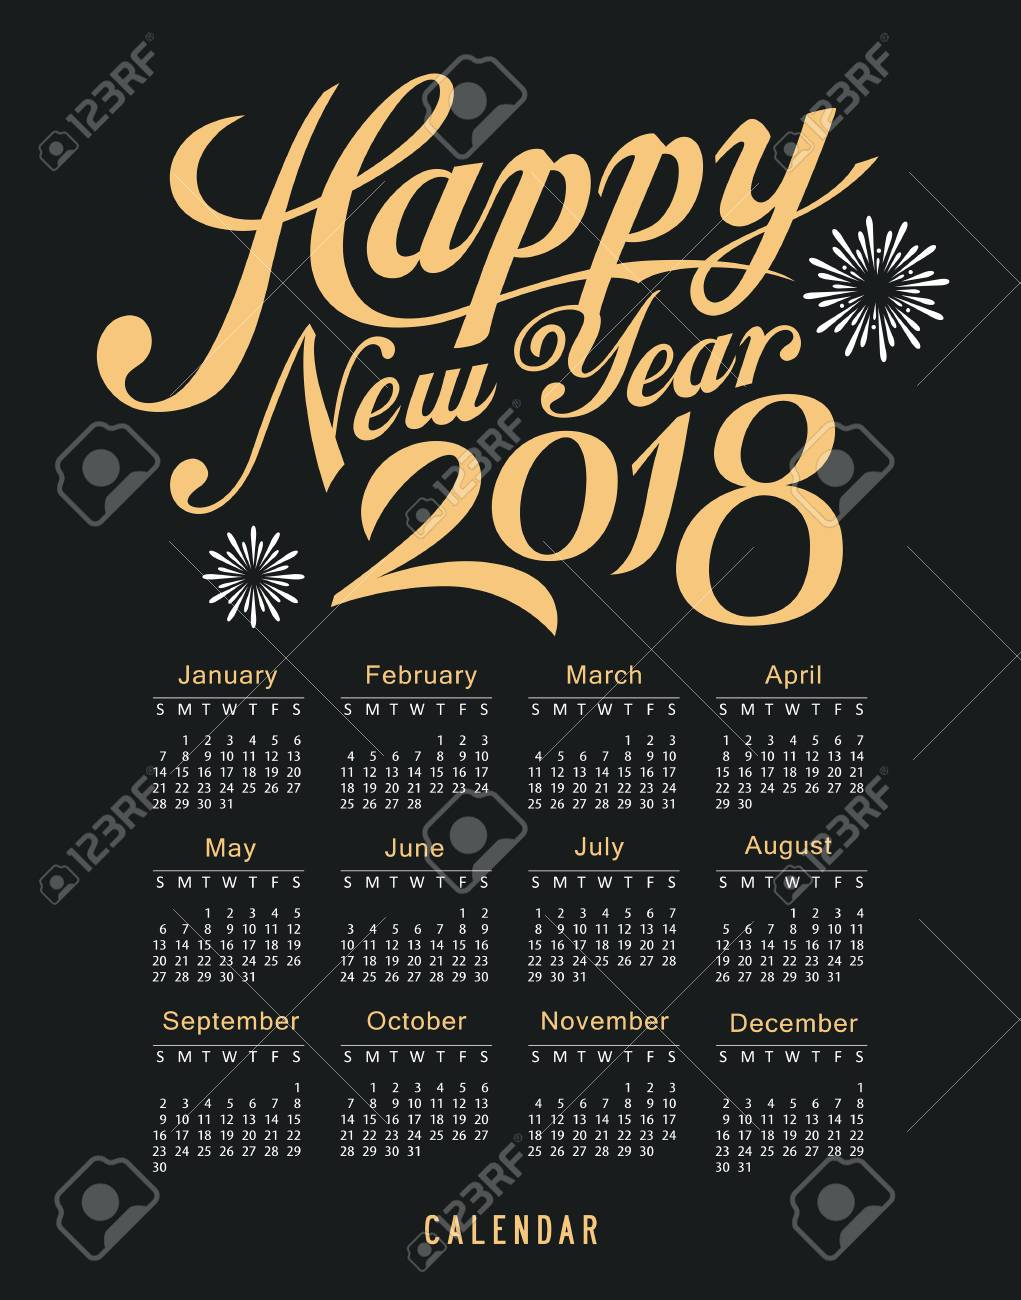 calendar happy new year 2018 message black and gold template design background vector stock vector